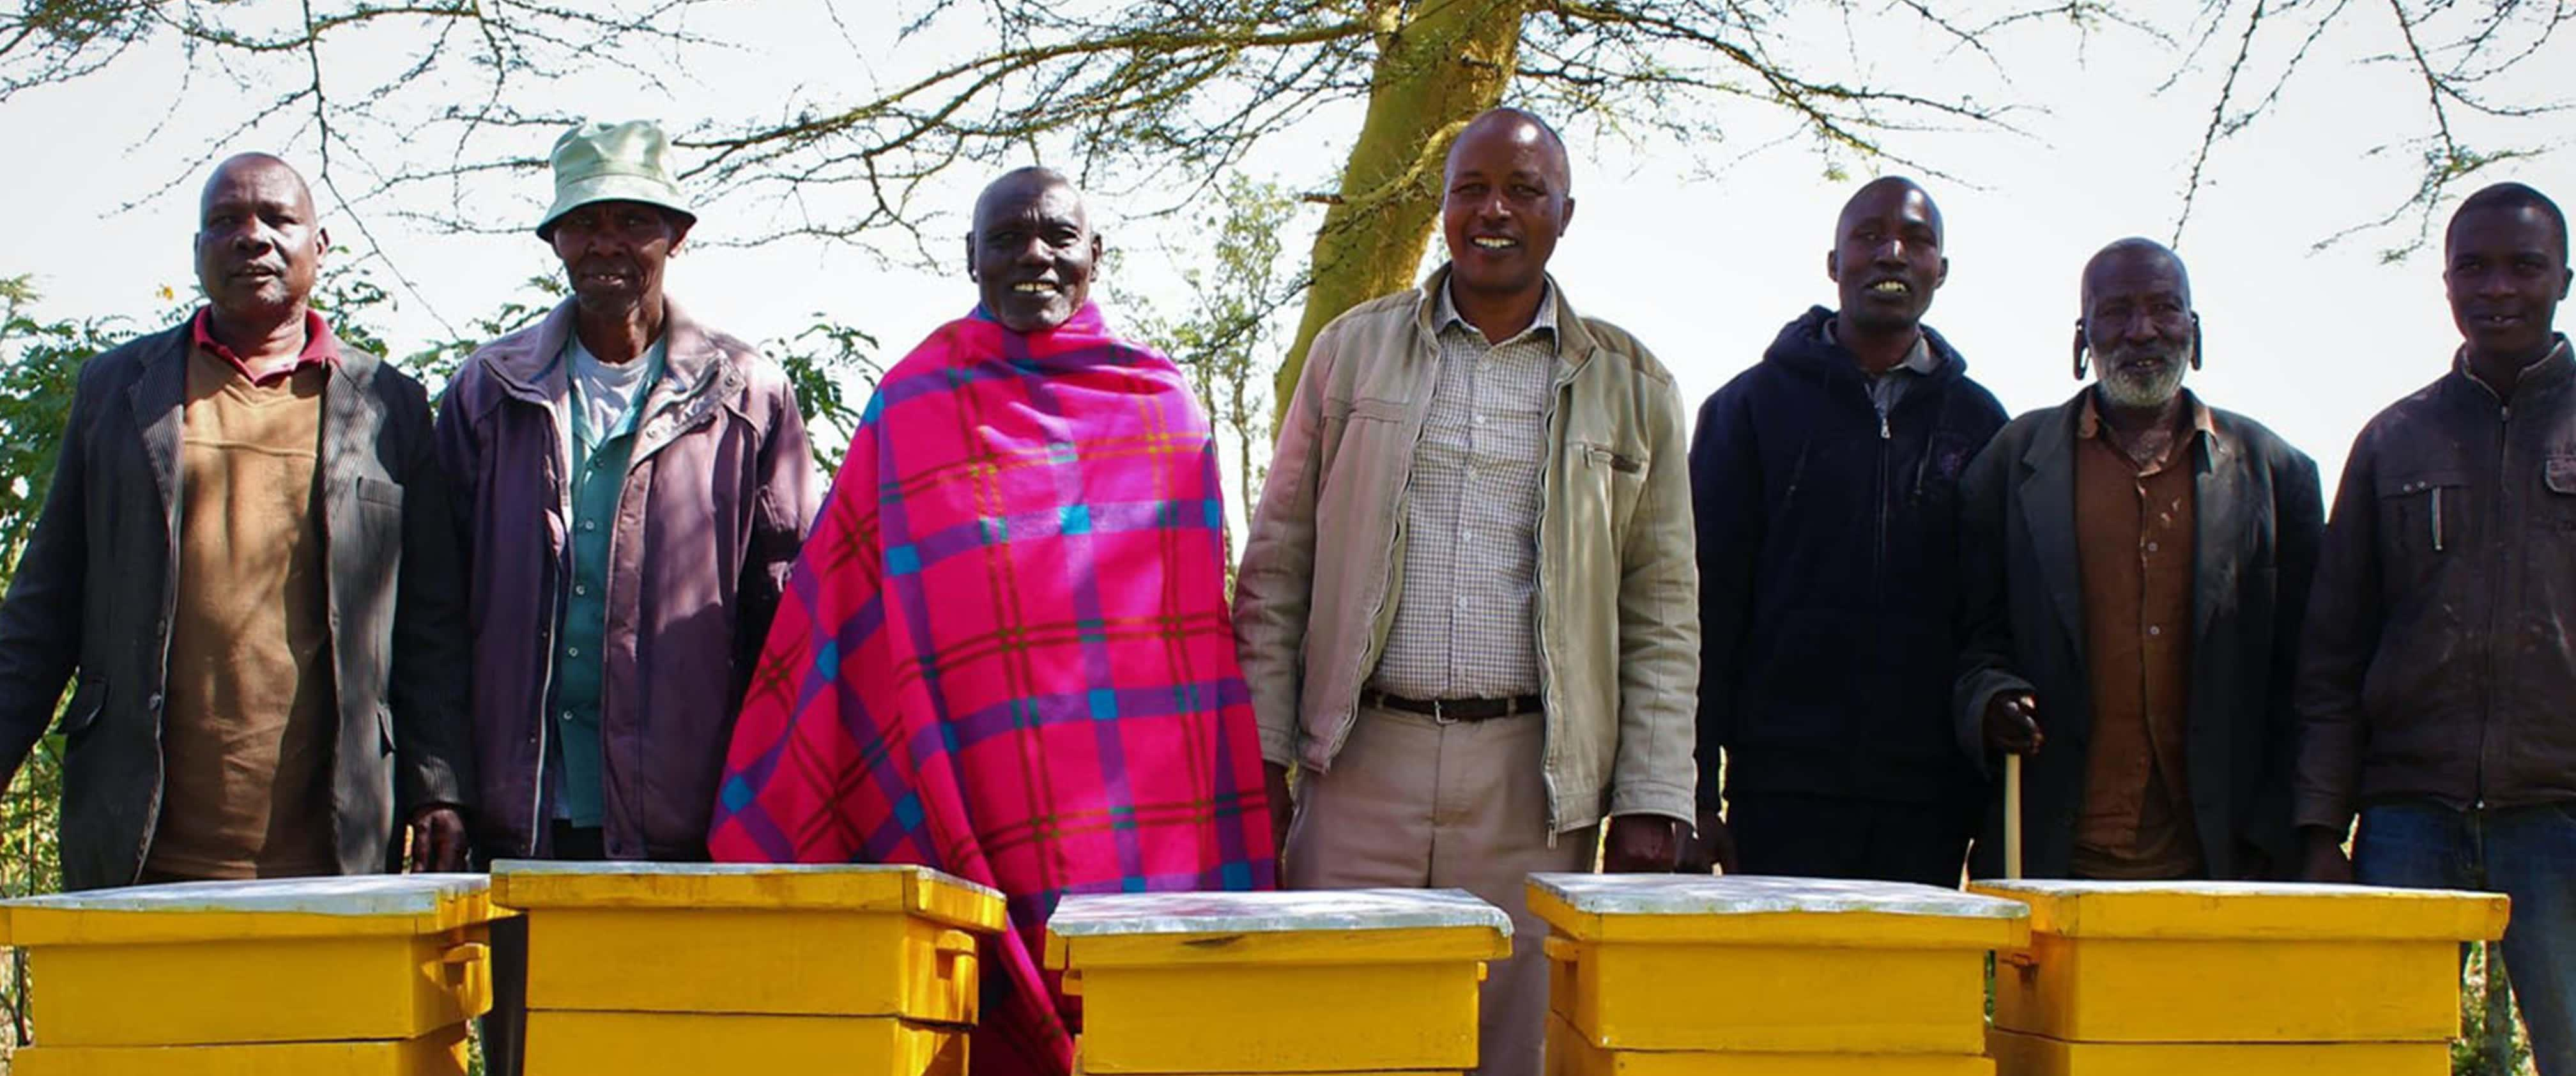 Beekeepers smiling, standing with beehives